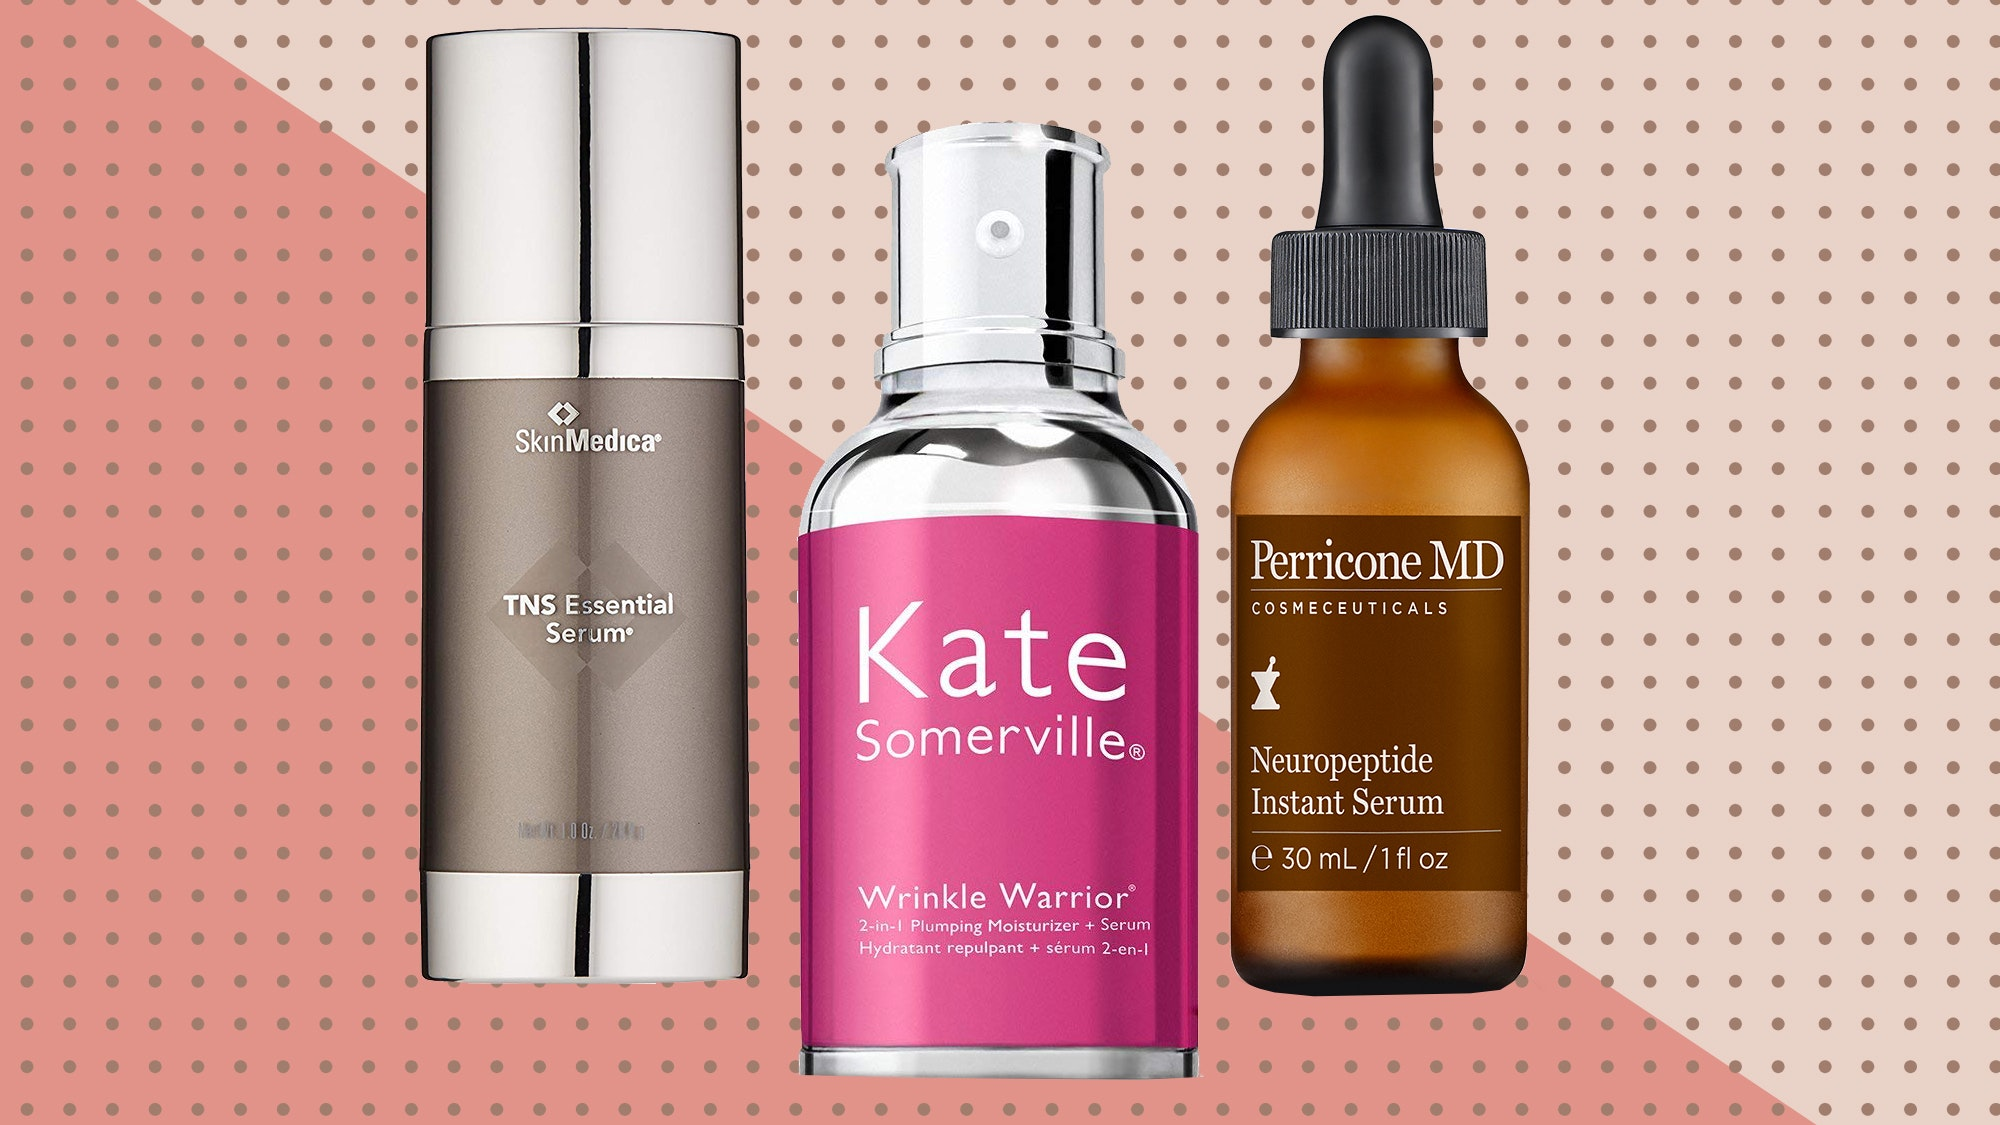 5 Age-Defying Products to Try If You're Not Ready for Injectable Wrinkle Reducers